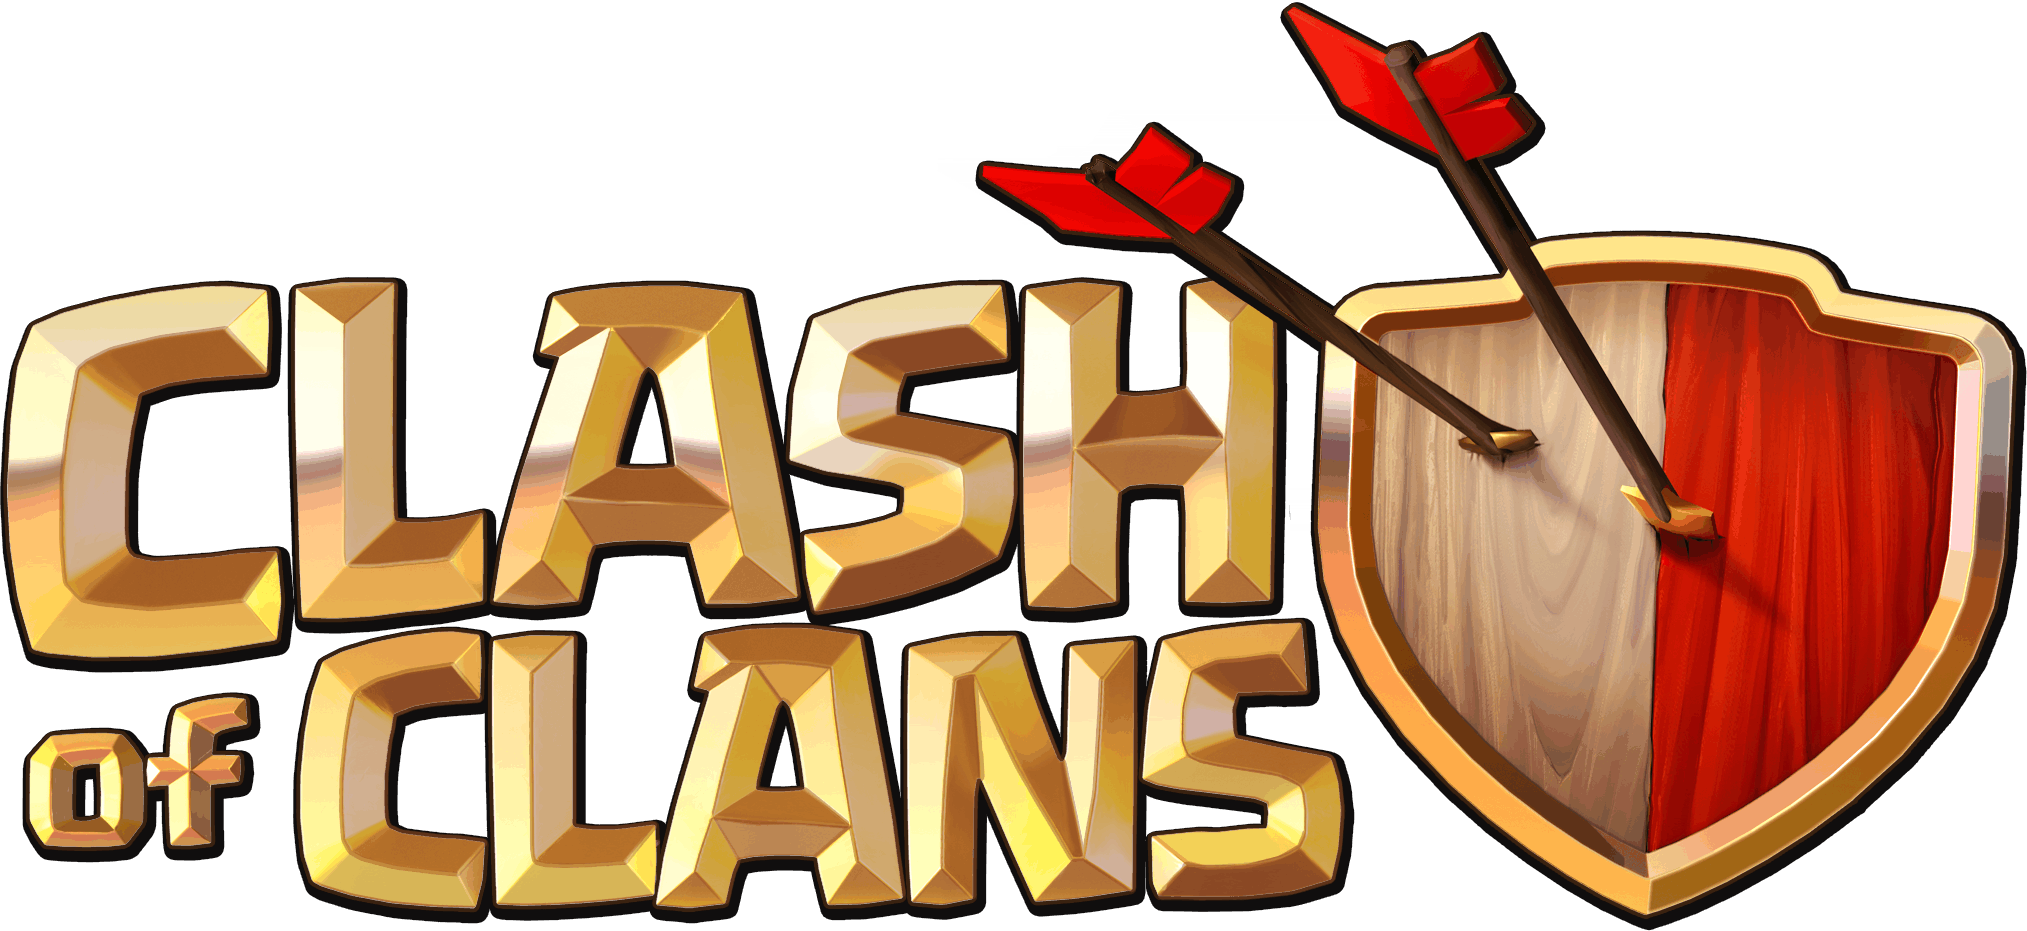 Clash Of Clans Logo - Clash Of Clans HD PNG